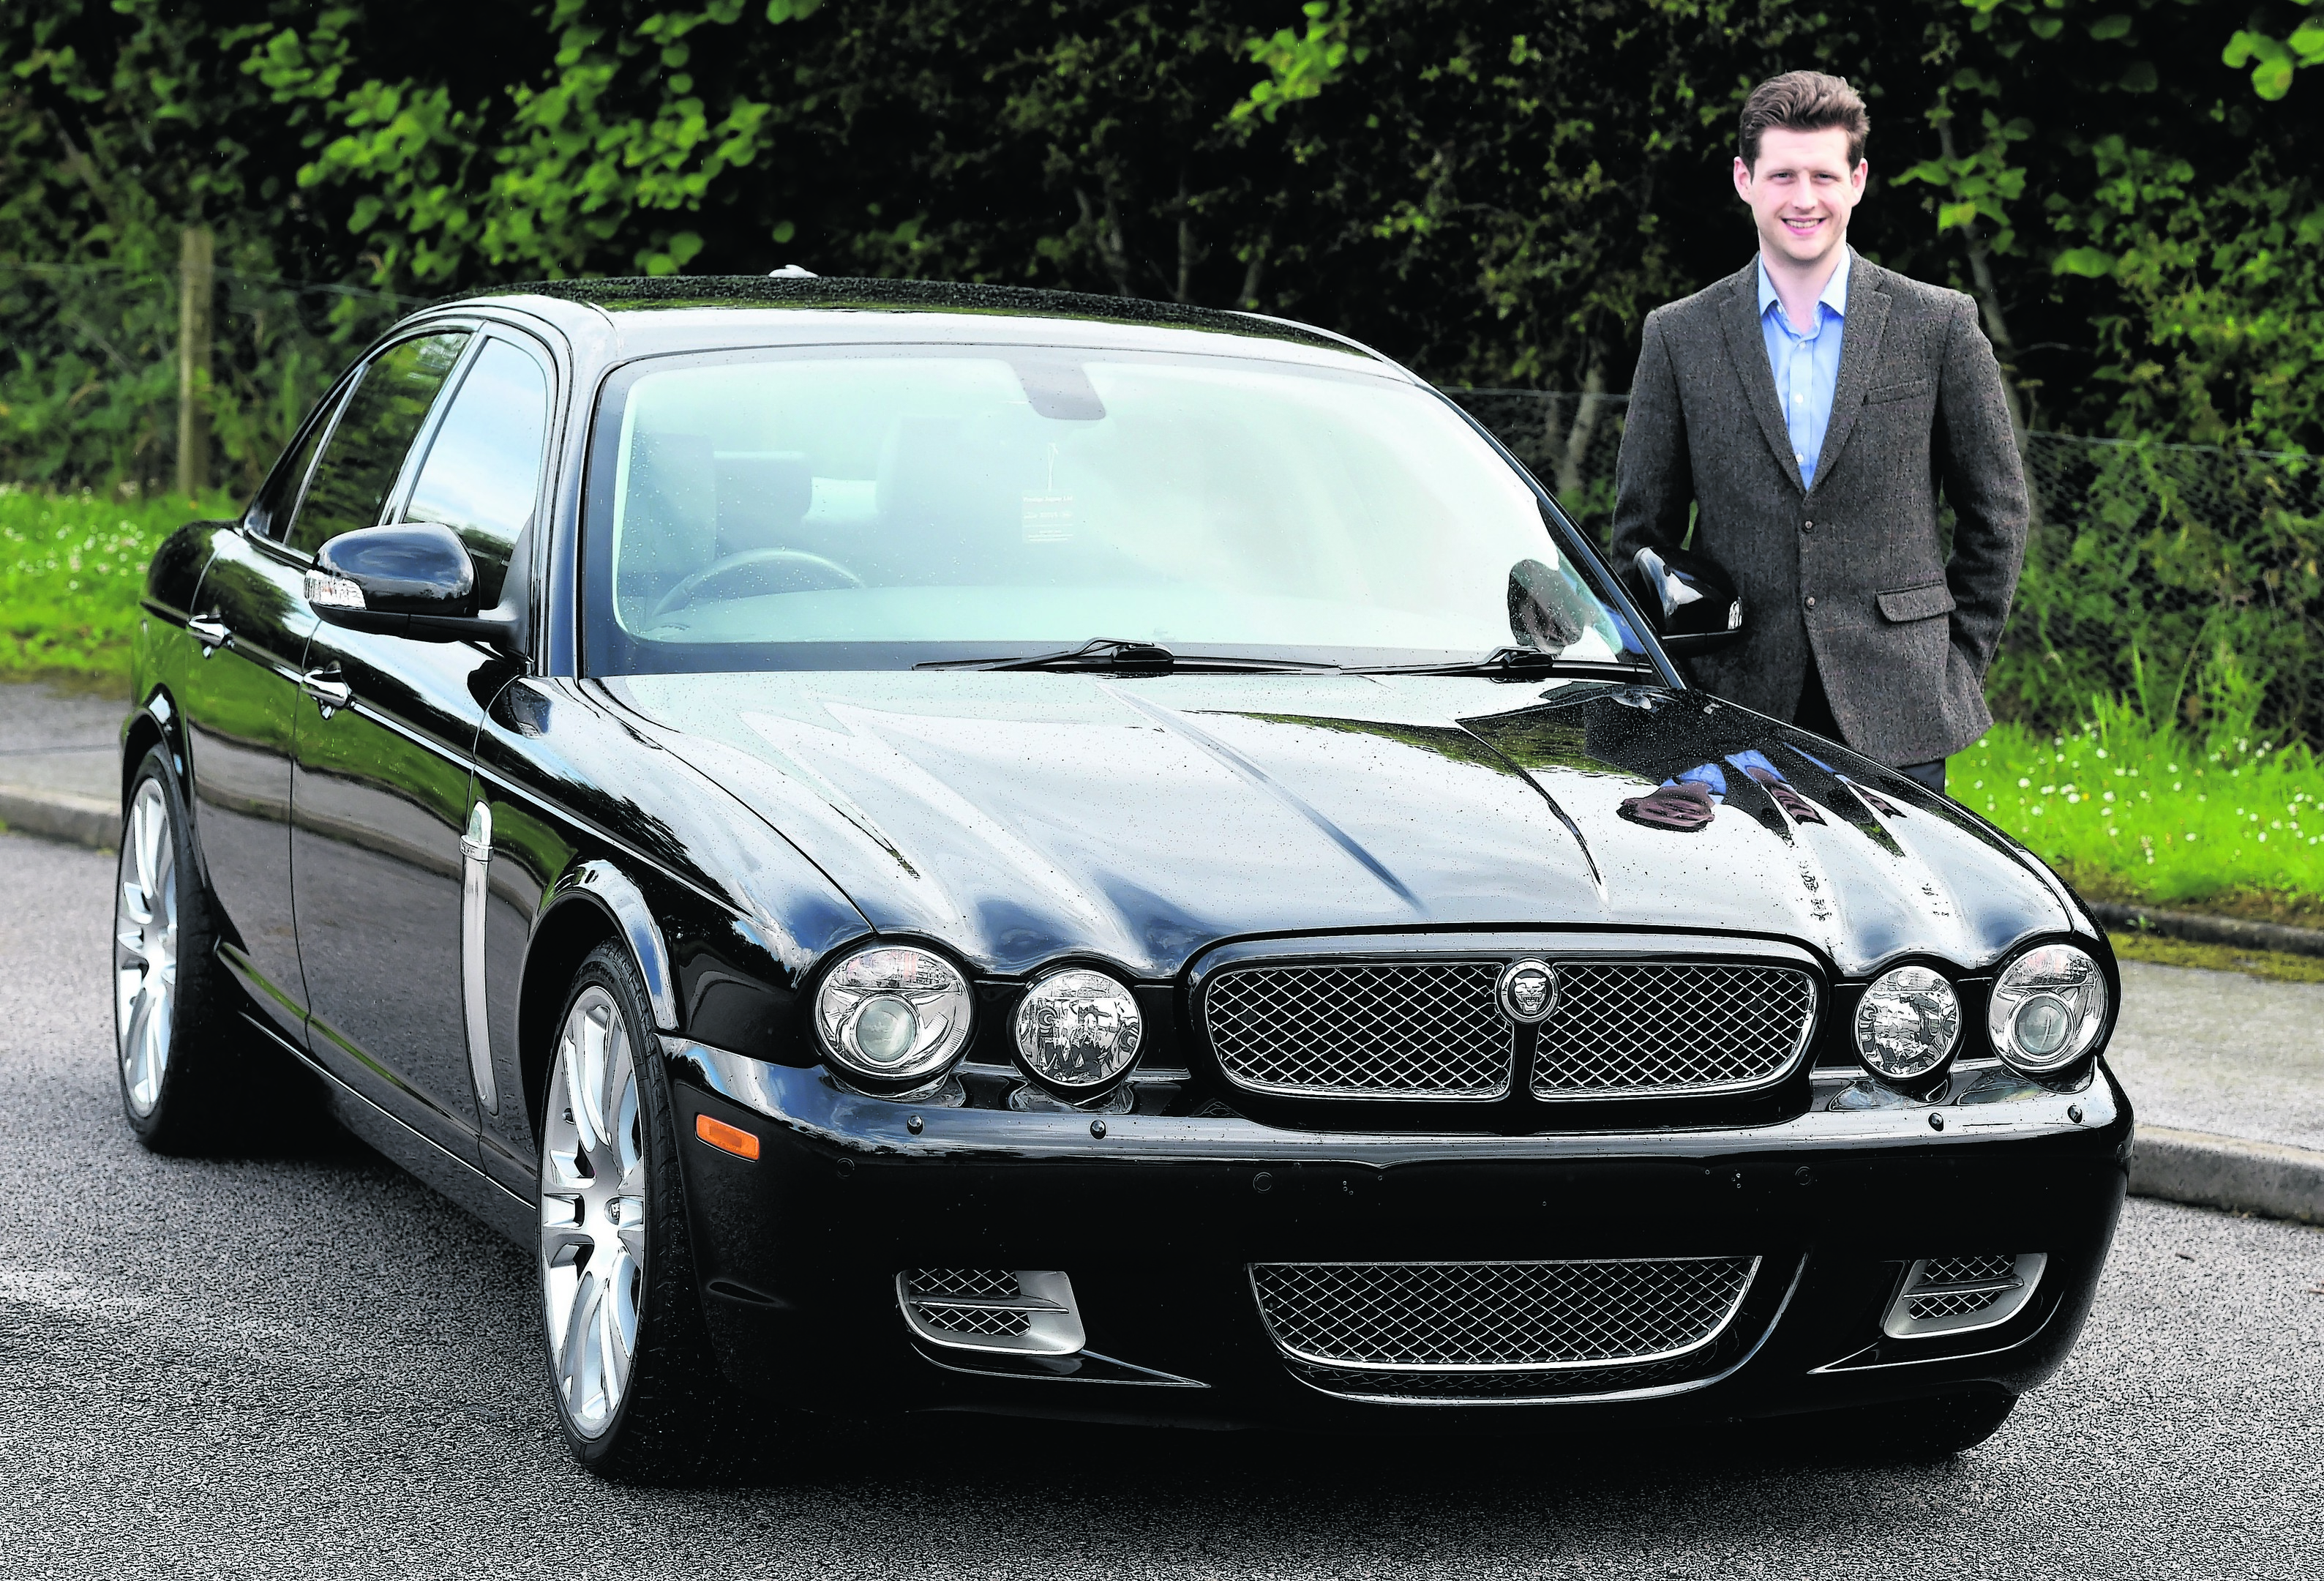 Simon Rattray with his 2008 Jaguar XJR at Kingswells.